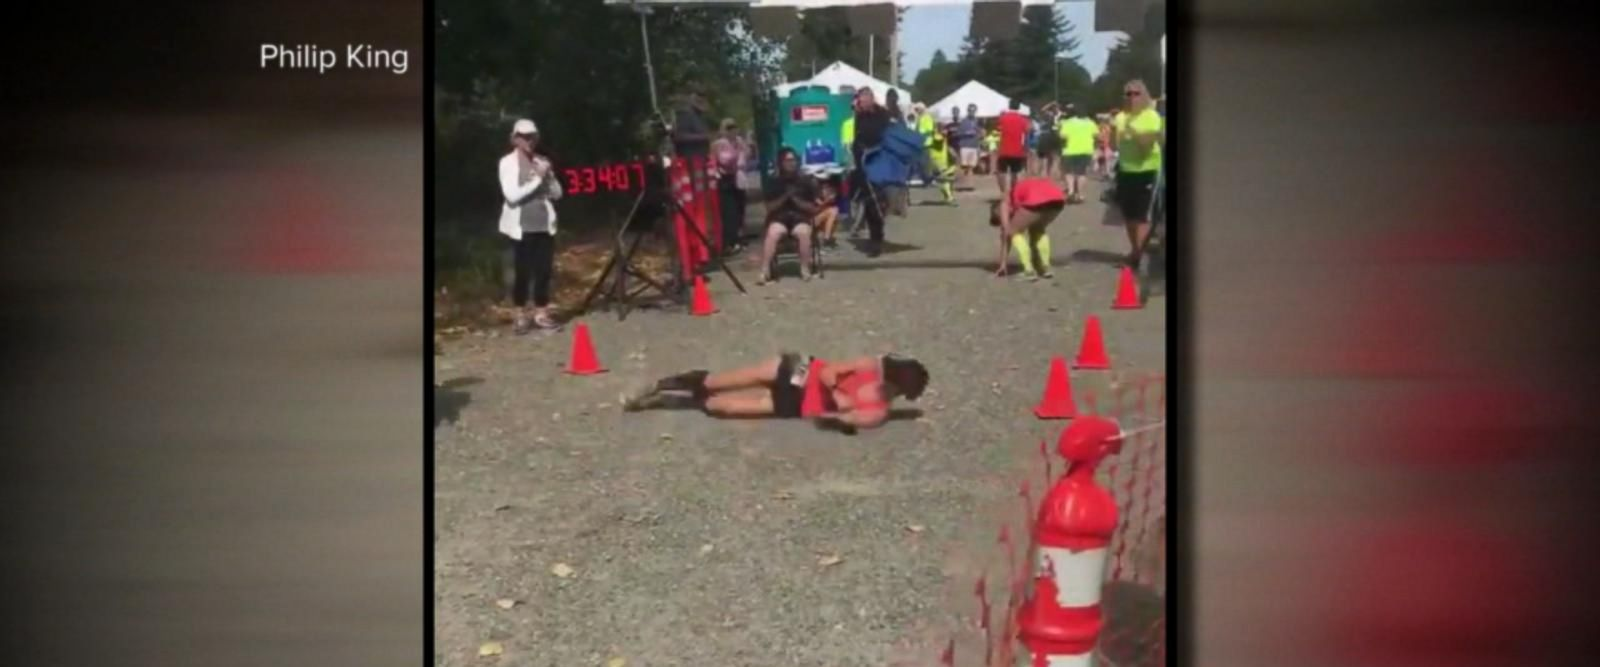 VIDEO: Woman rolls over marathon finish line